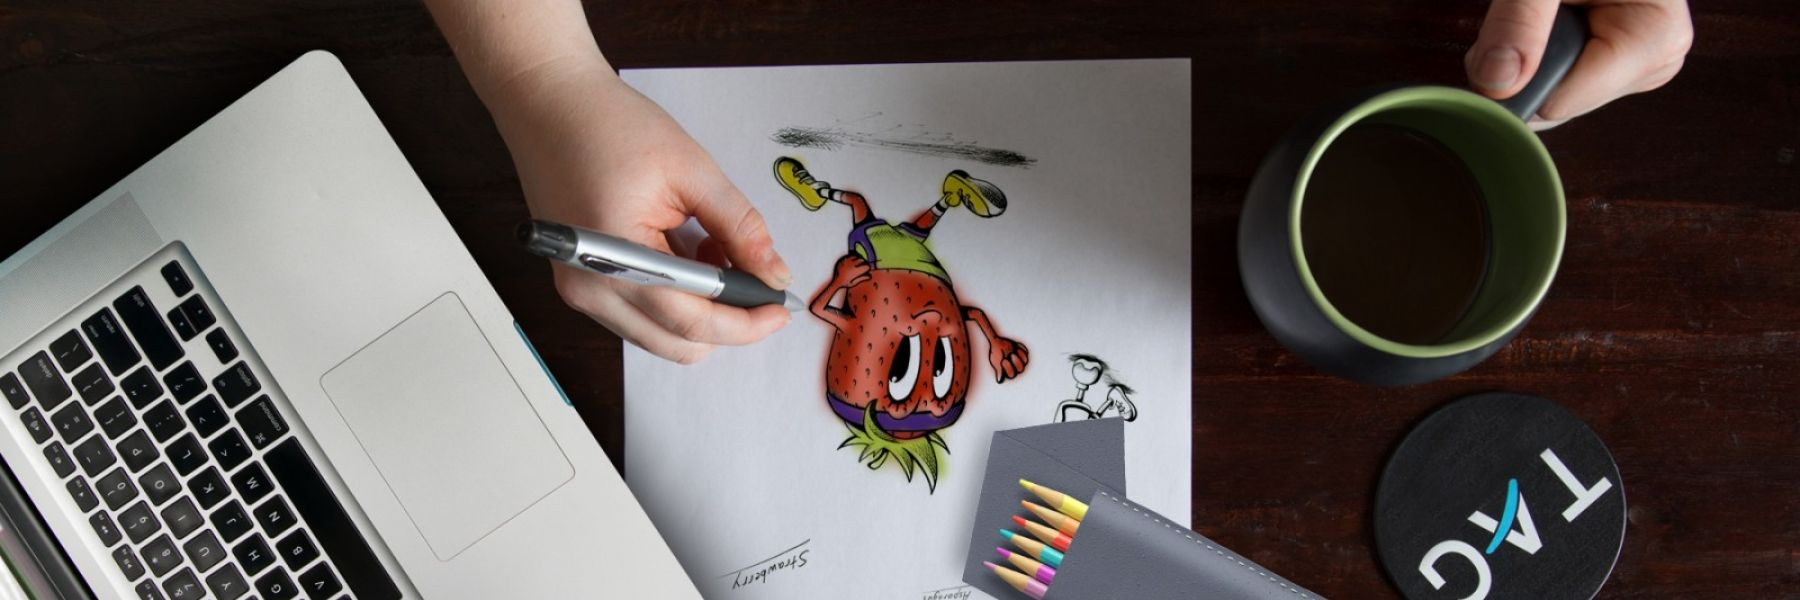 Person designing the QCHI animated strawberry on a wooden desk top on paper.